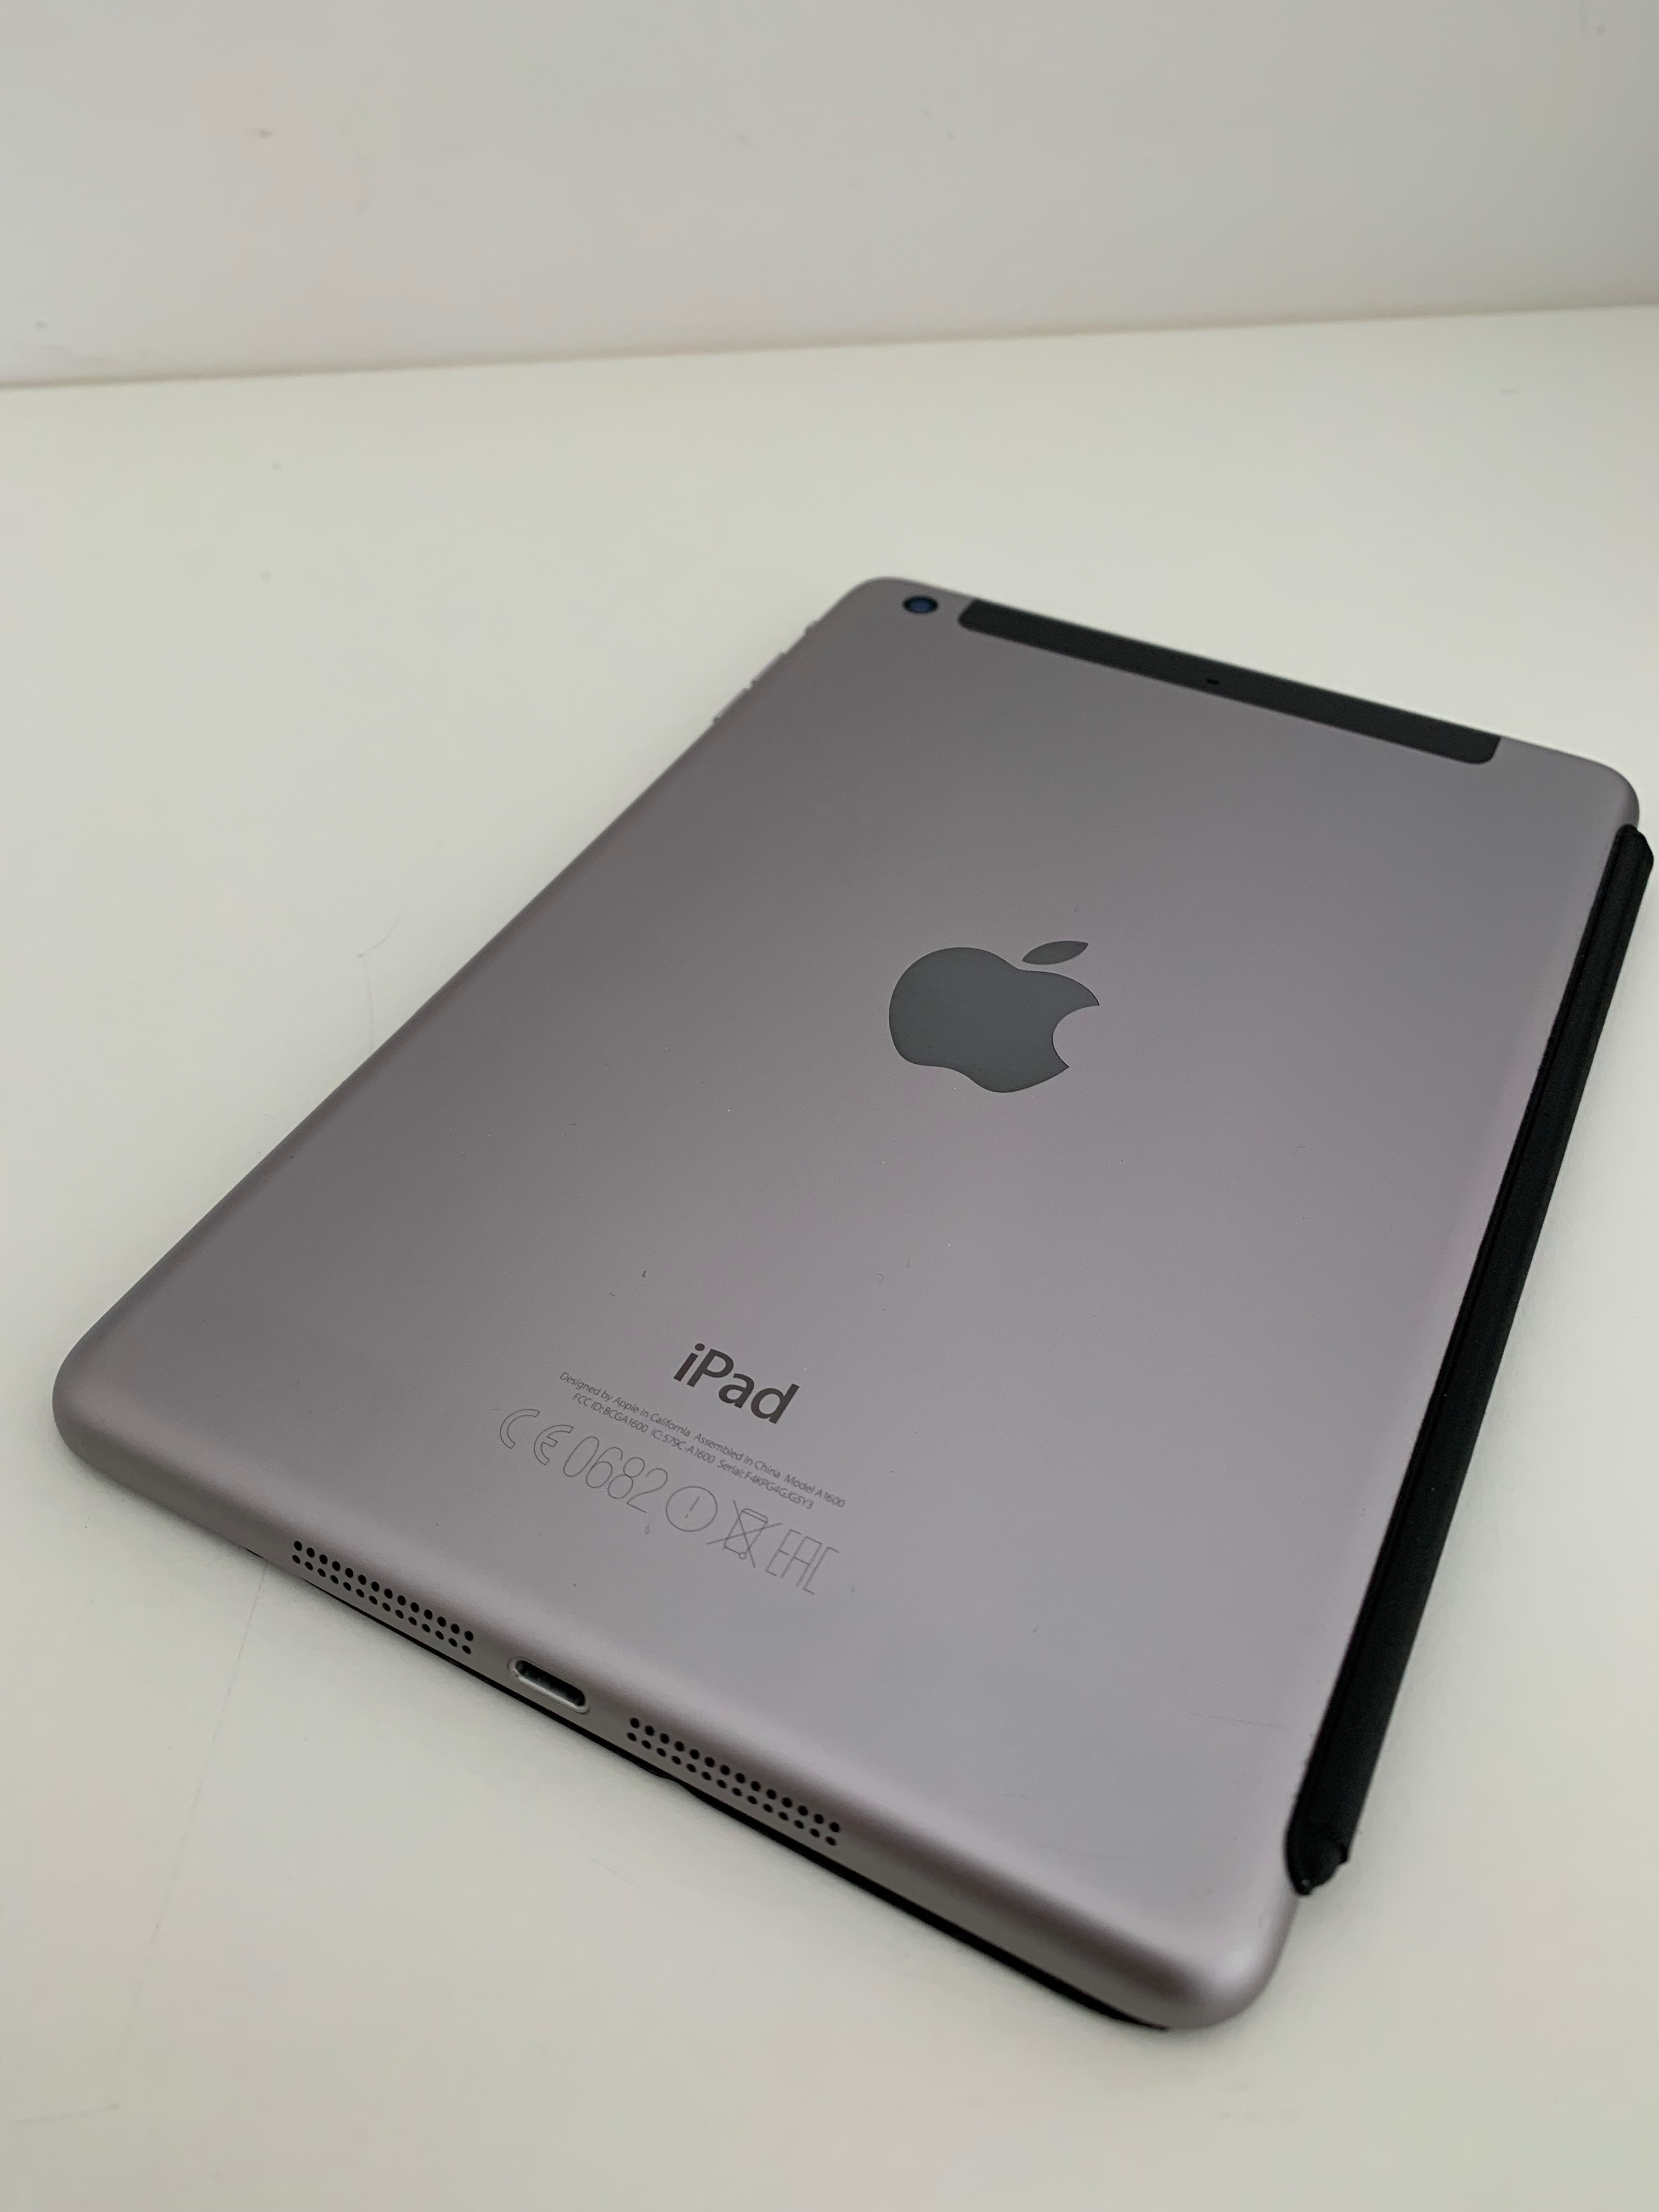 iPad mini 3 wifi + cellular 64 gb